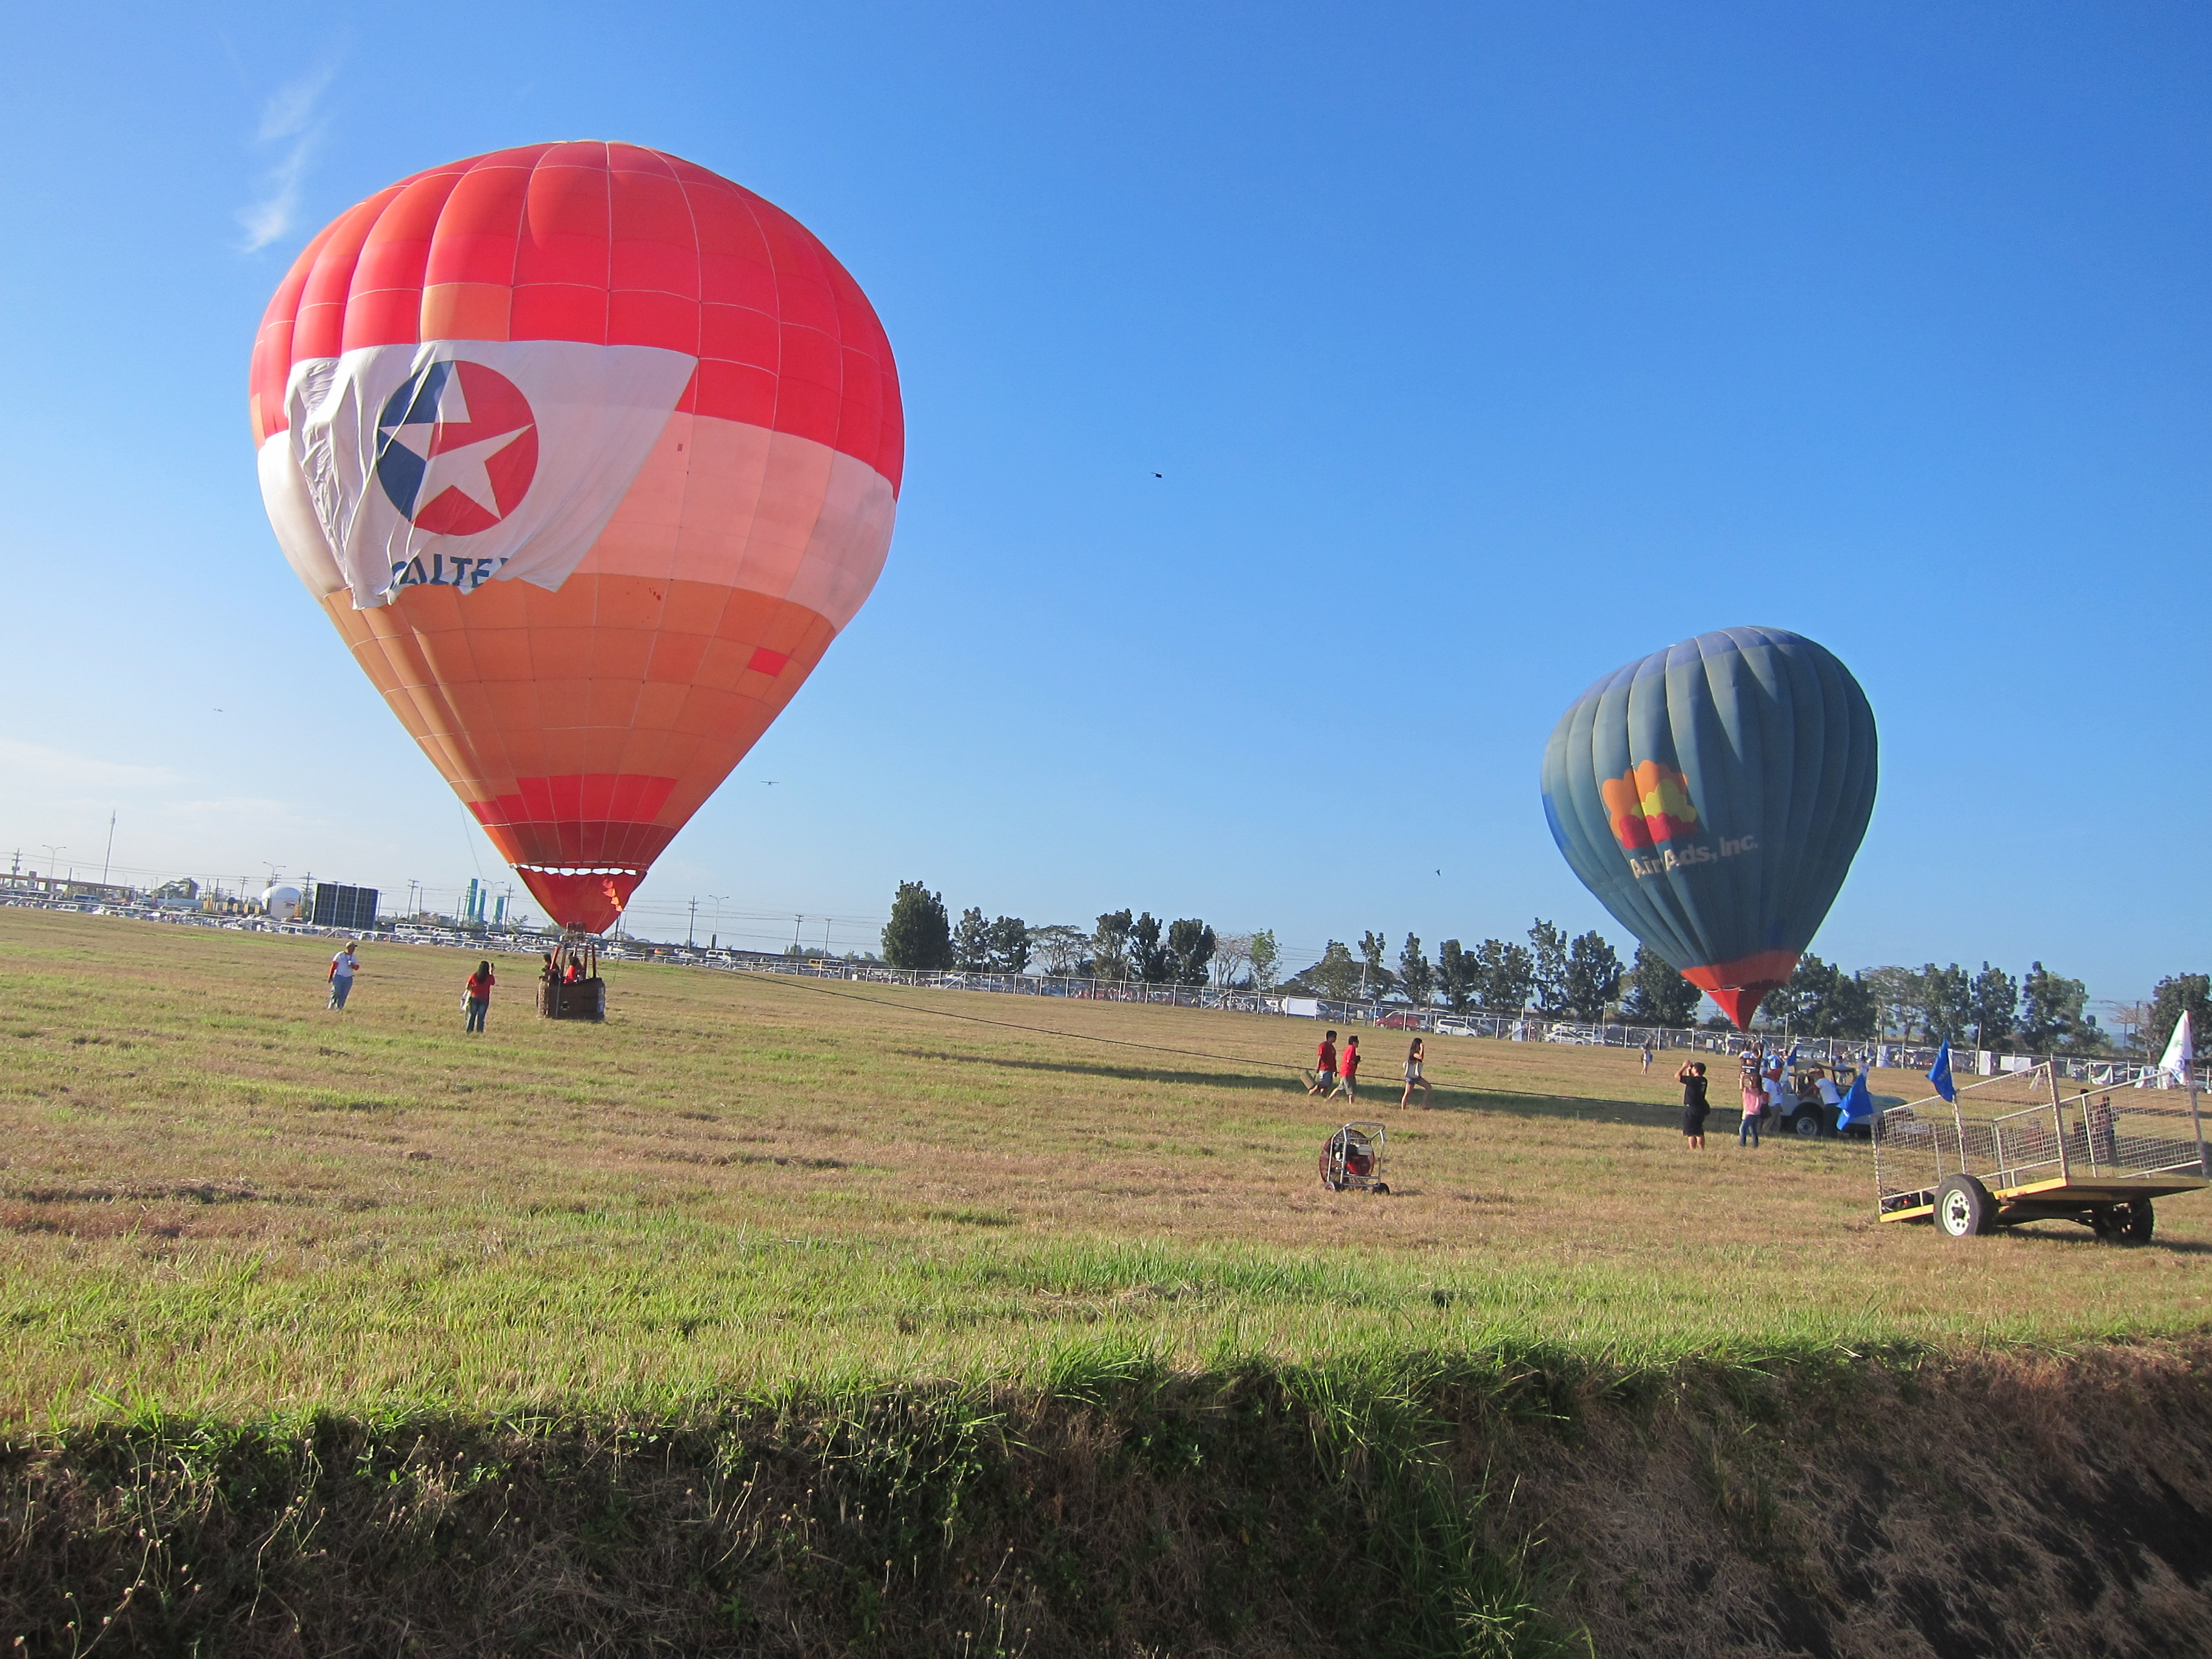 99 Hot Air Balloons Kites And All Things That Fly